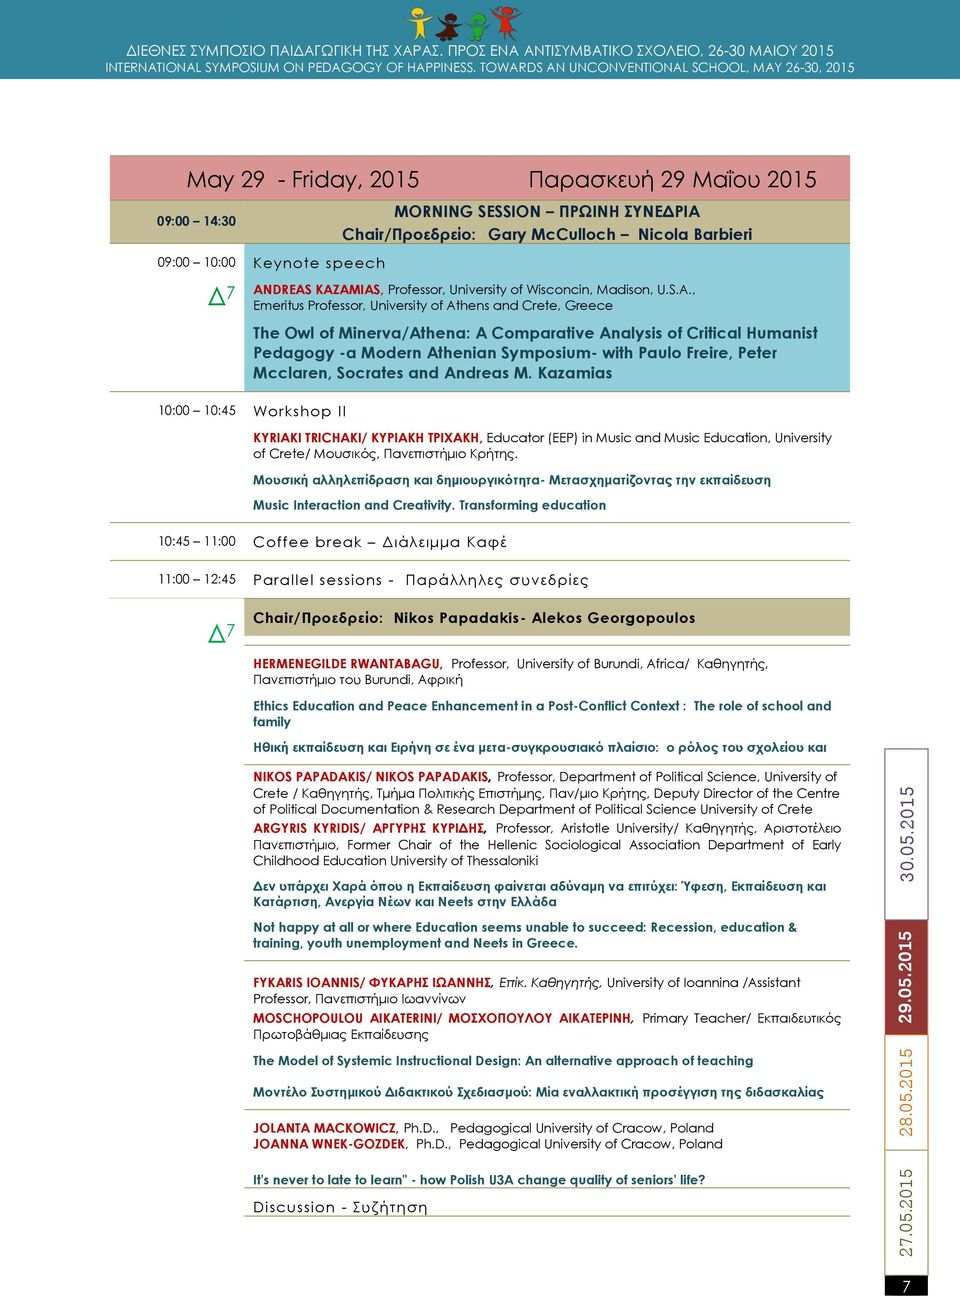 , Emeritus Professor, University of Athens and Crete, Greece The Owl of Minerva/Athena: A Comparative Analysis of Critical Humanist Pedagogy -a Modern Athenian Symposium- with Paulo Freire, Peter